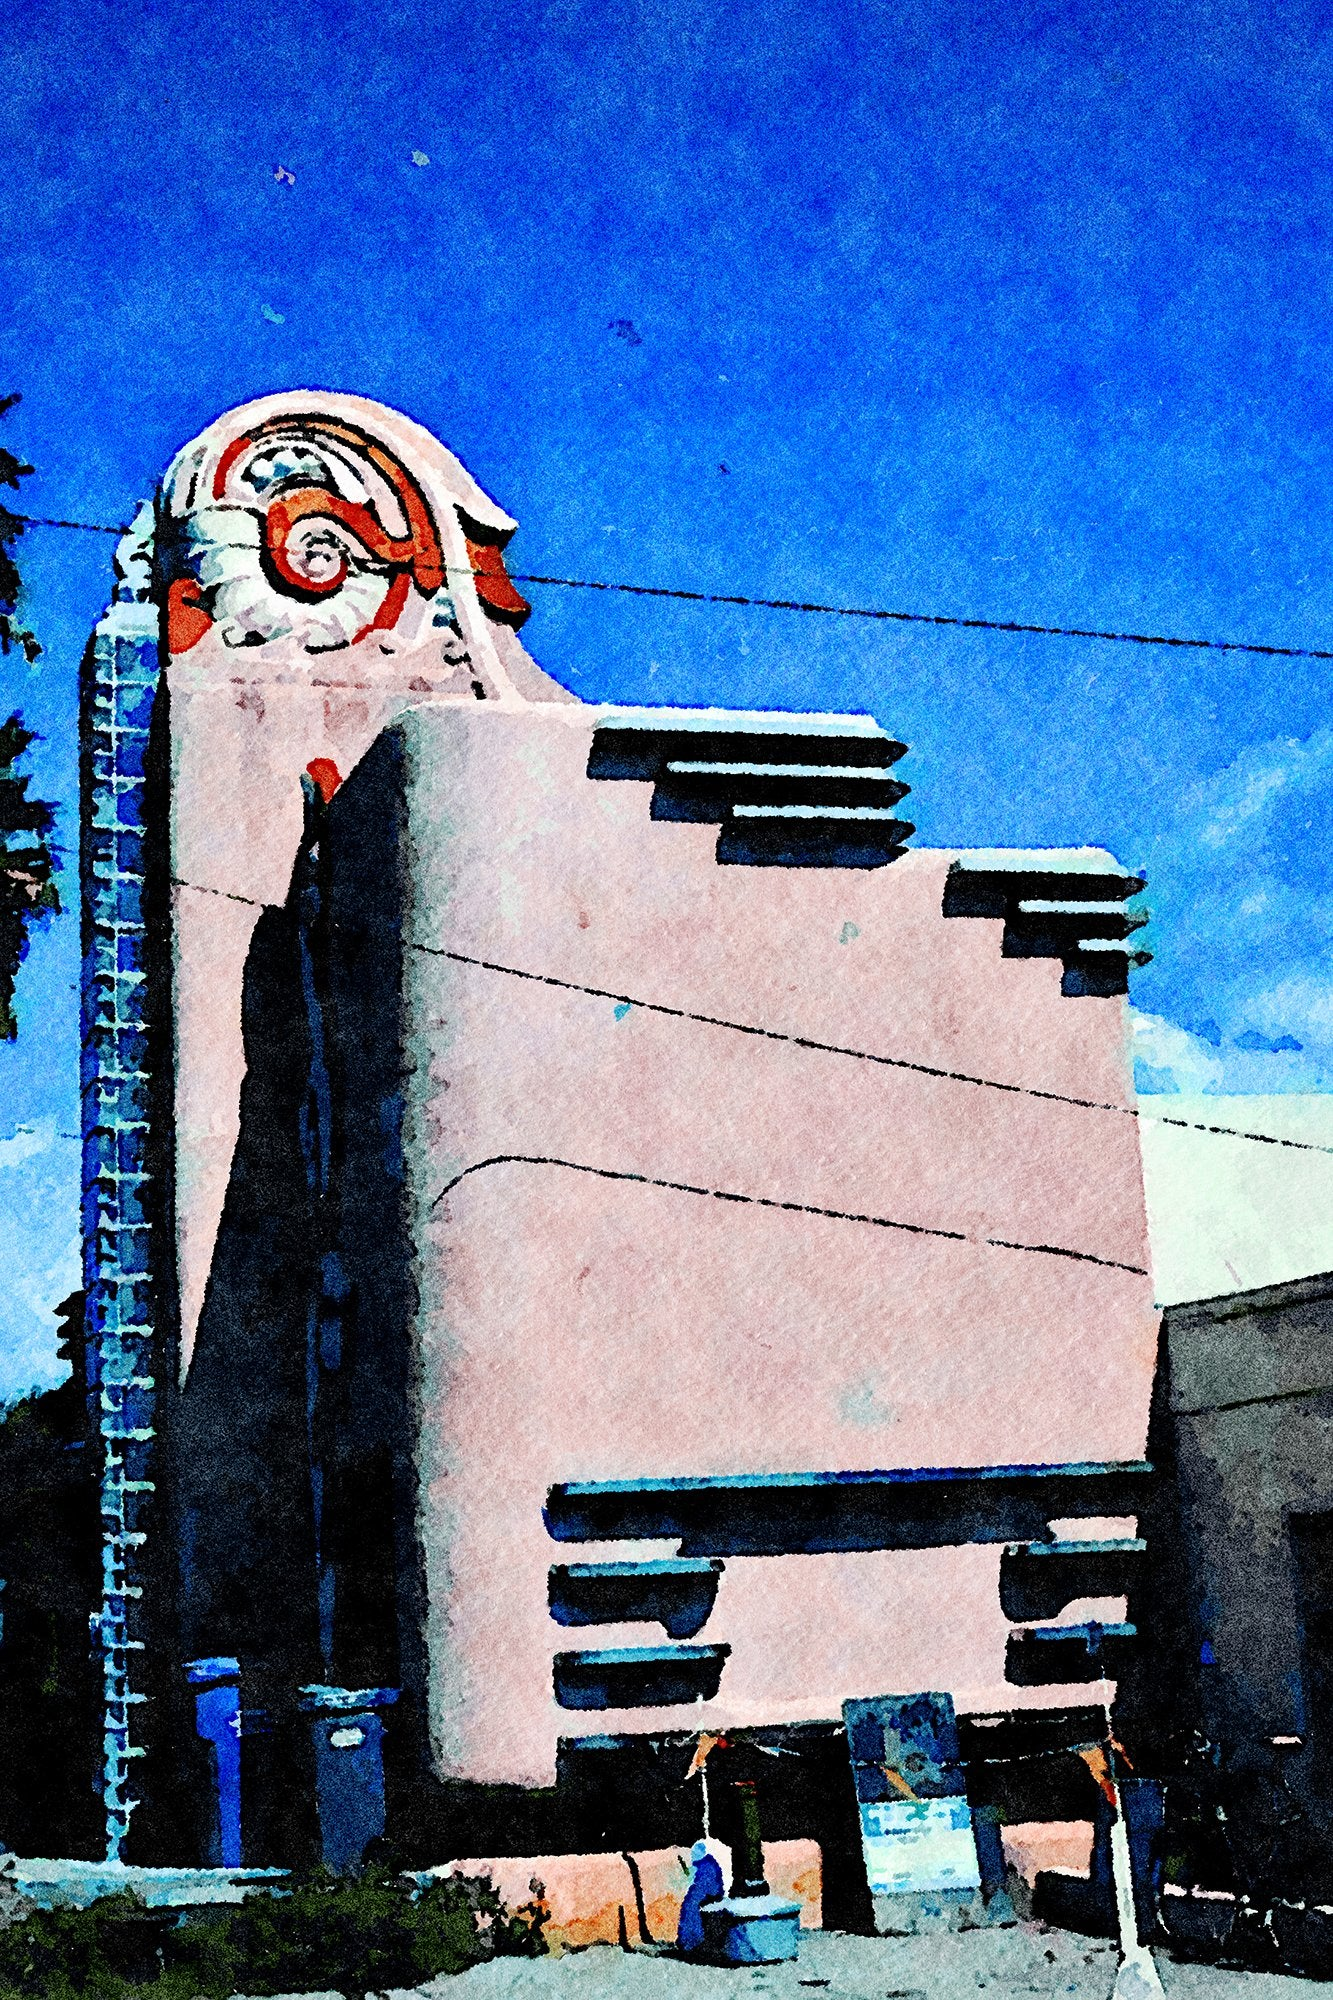 Retro Deco Building, Route 41, Morro Bay, California, Reworked, Series 1